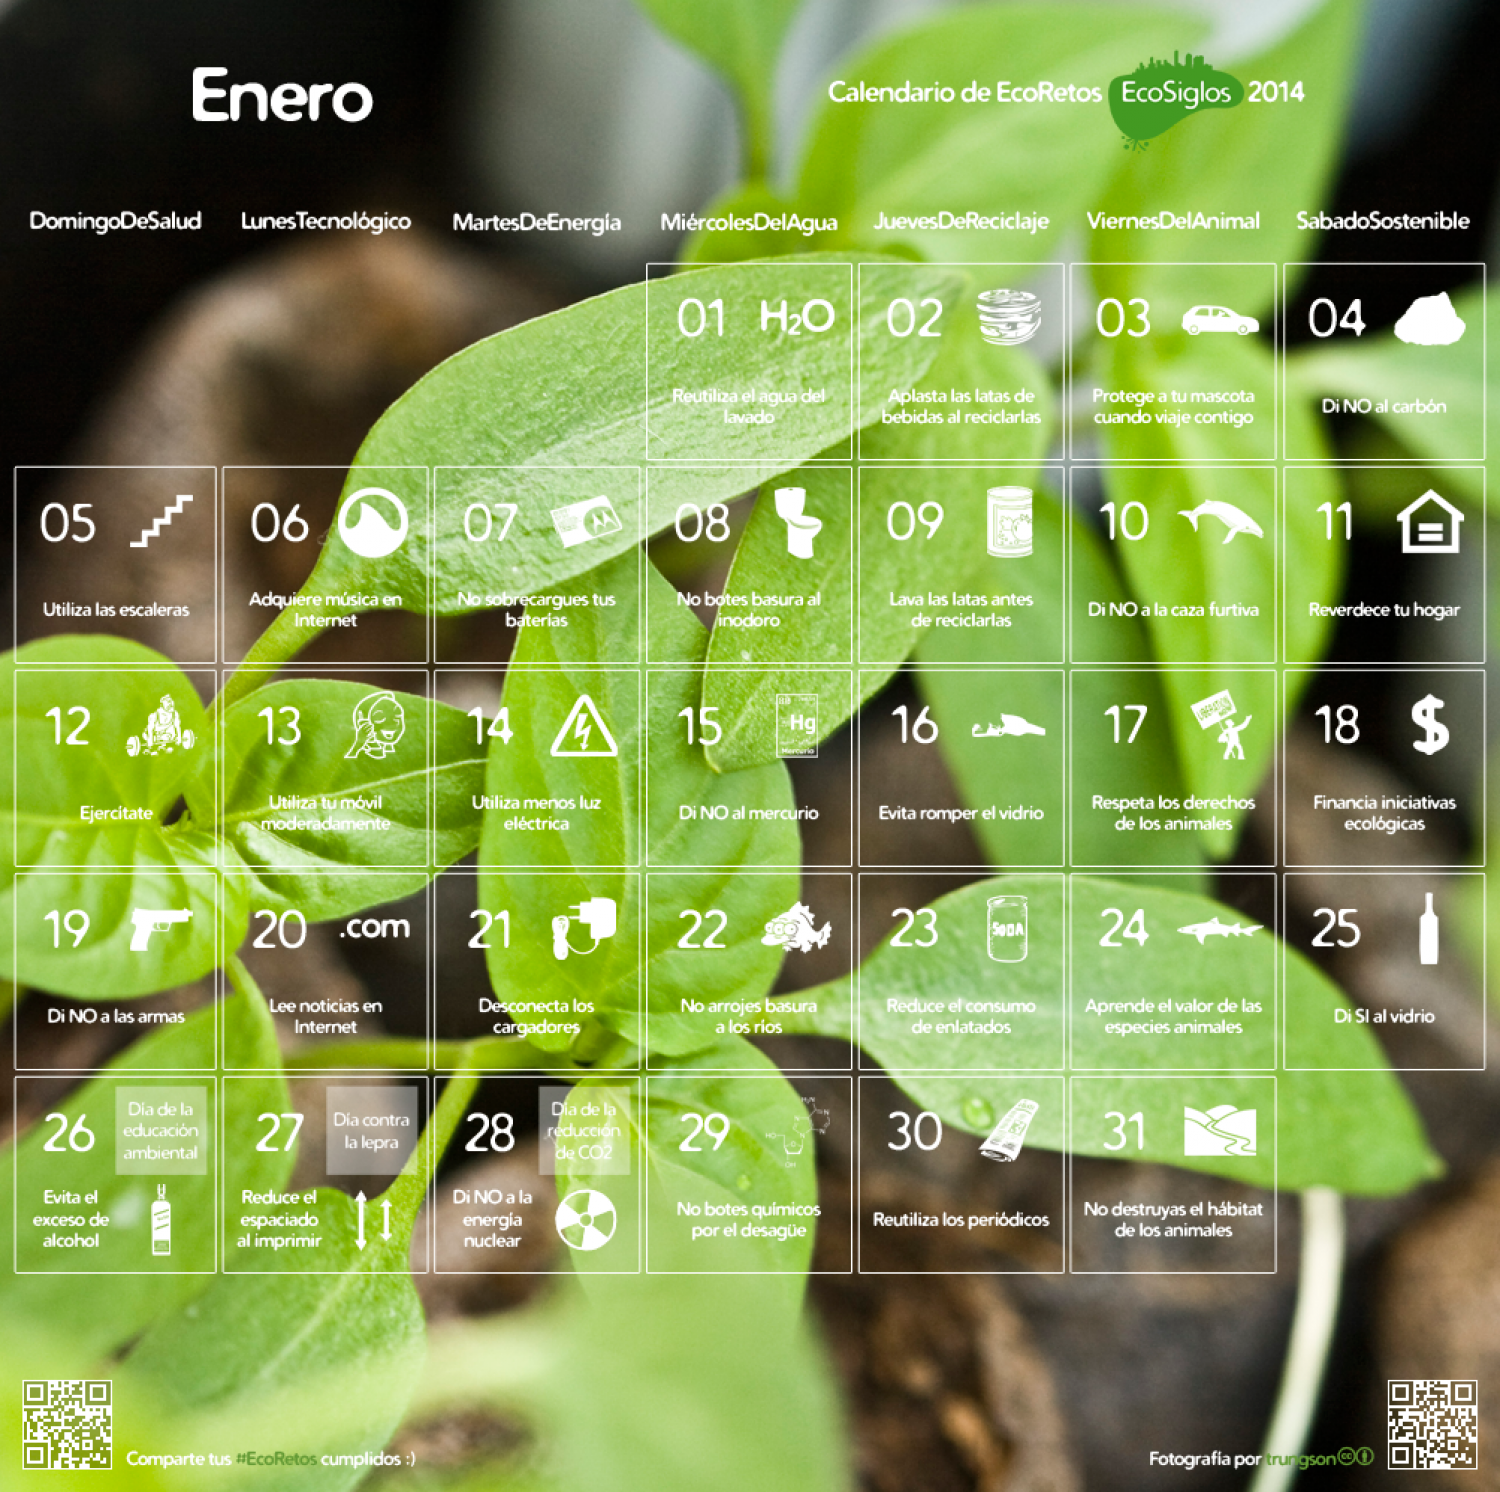 Calendario de EcoRetos 2014 - Enero Infographic